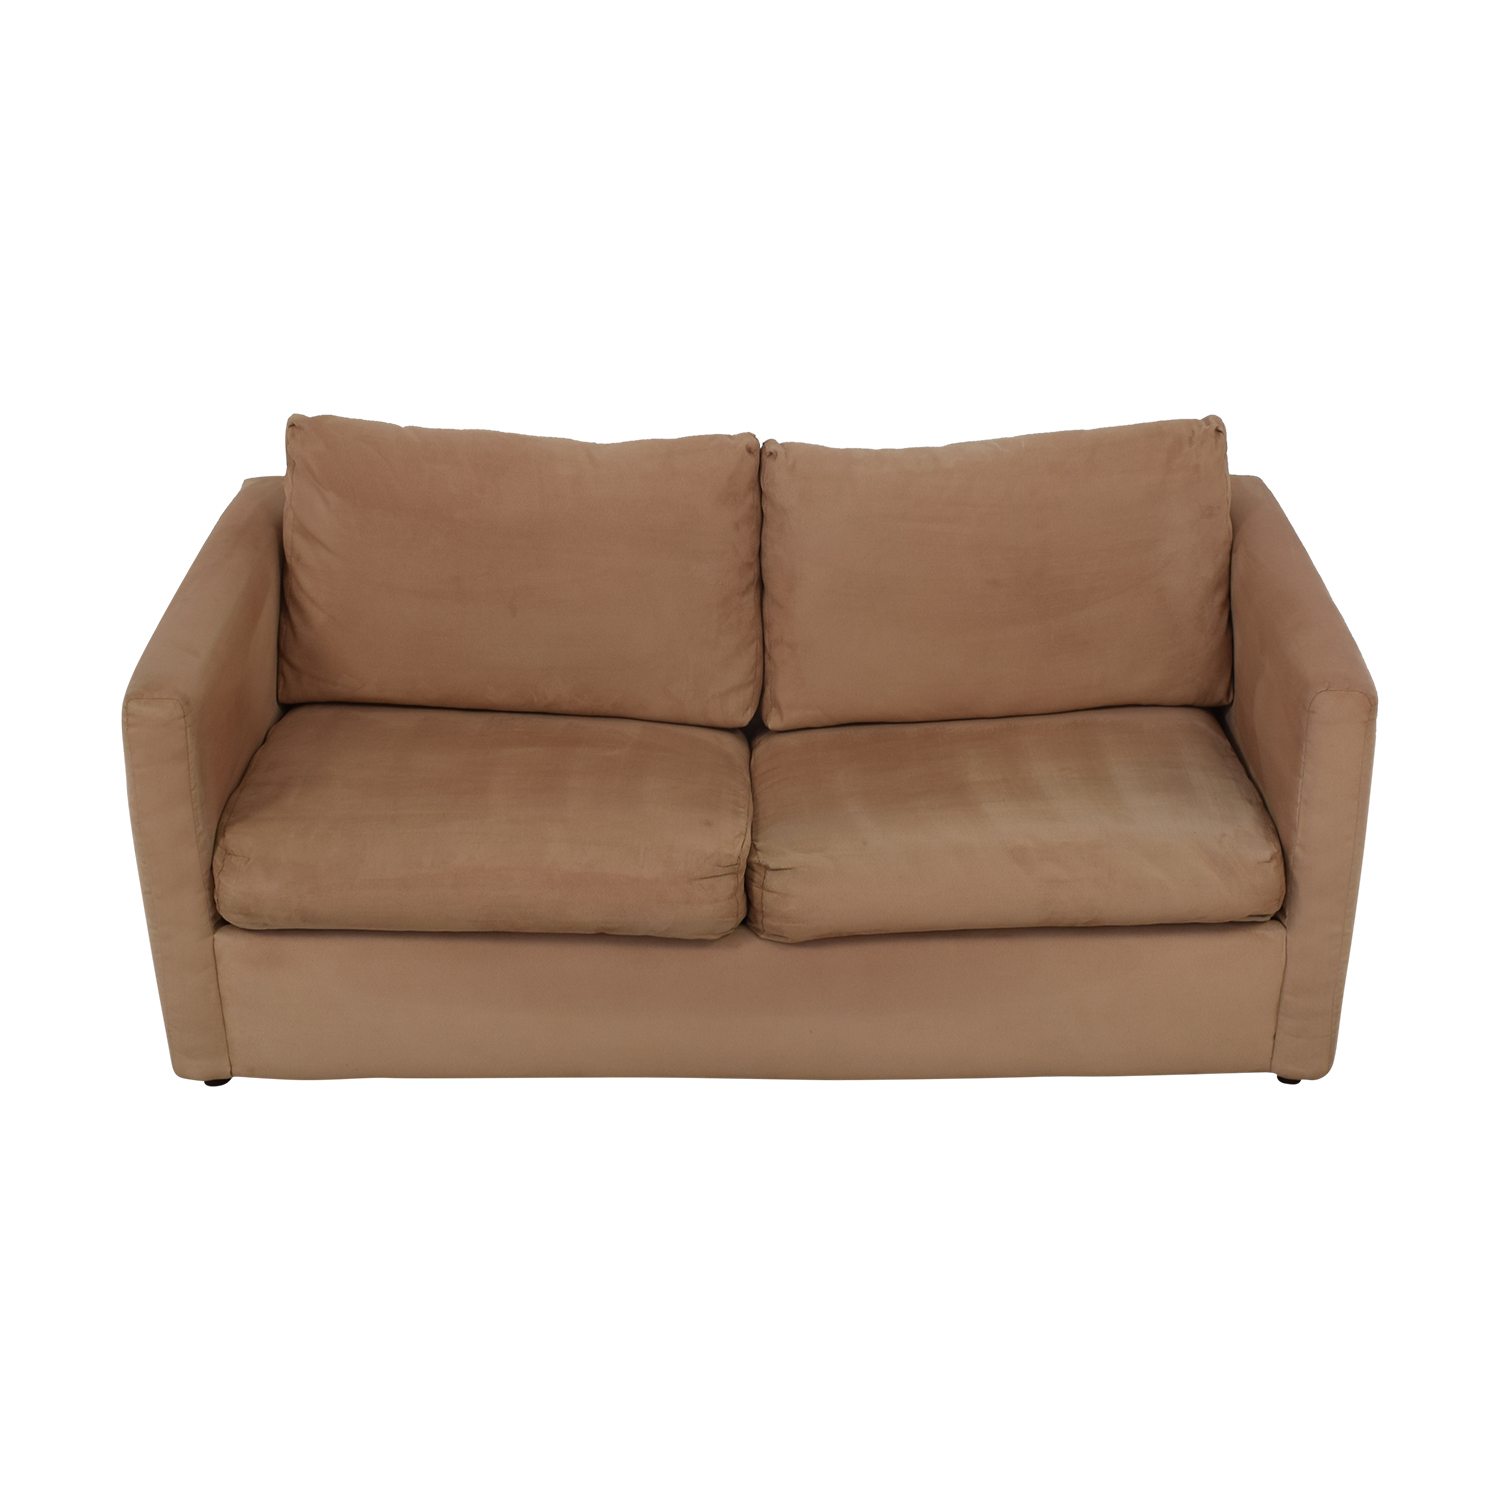 buy Rowe Furniture Two Cushion Sleeper Sofa Rowe Furniture Sofa Beds